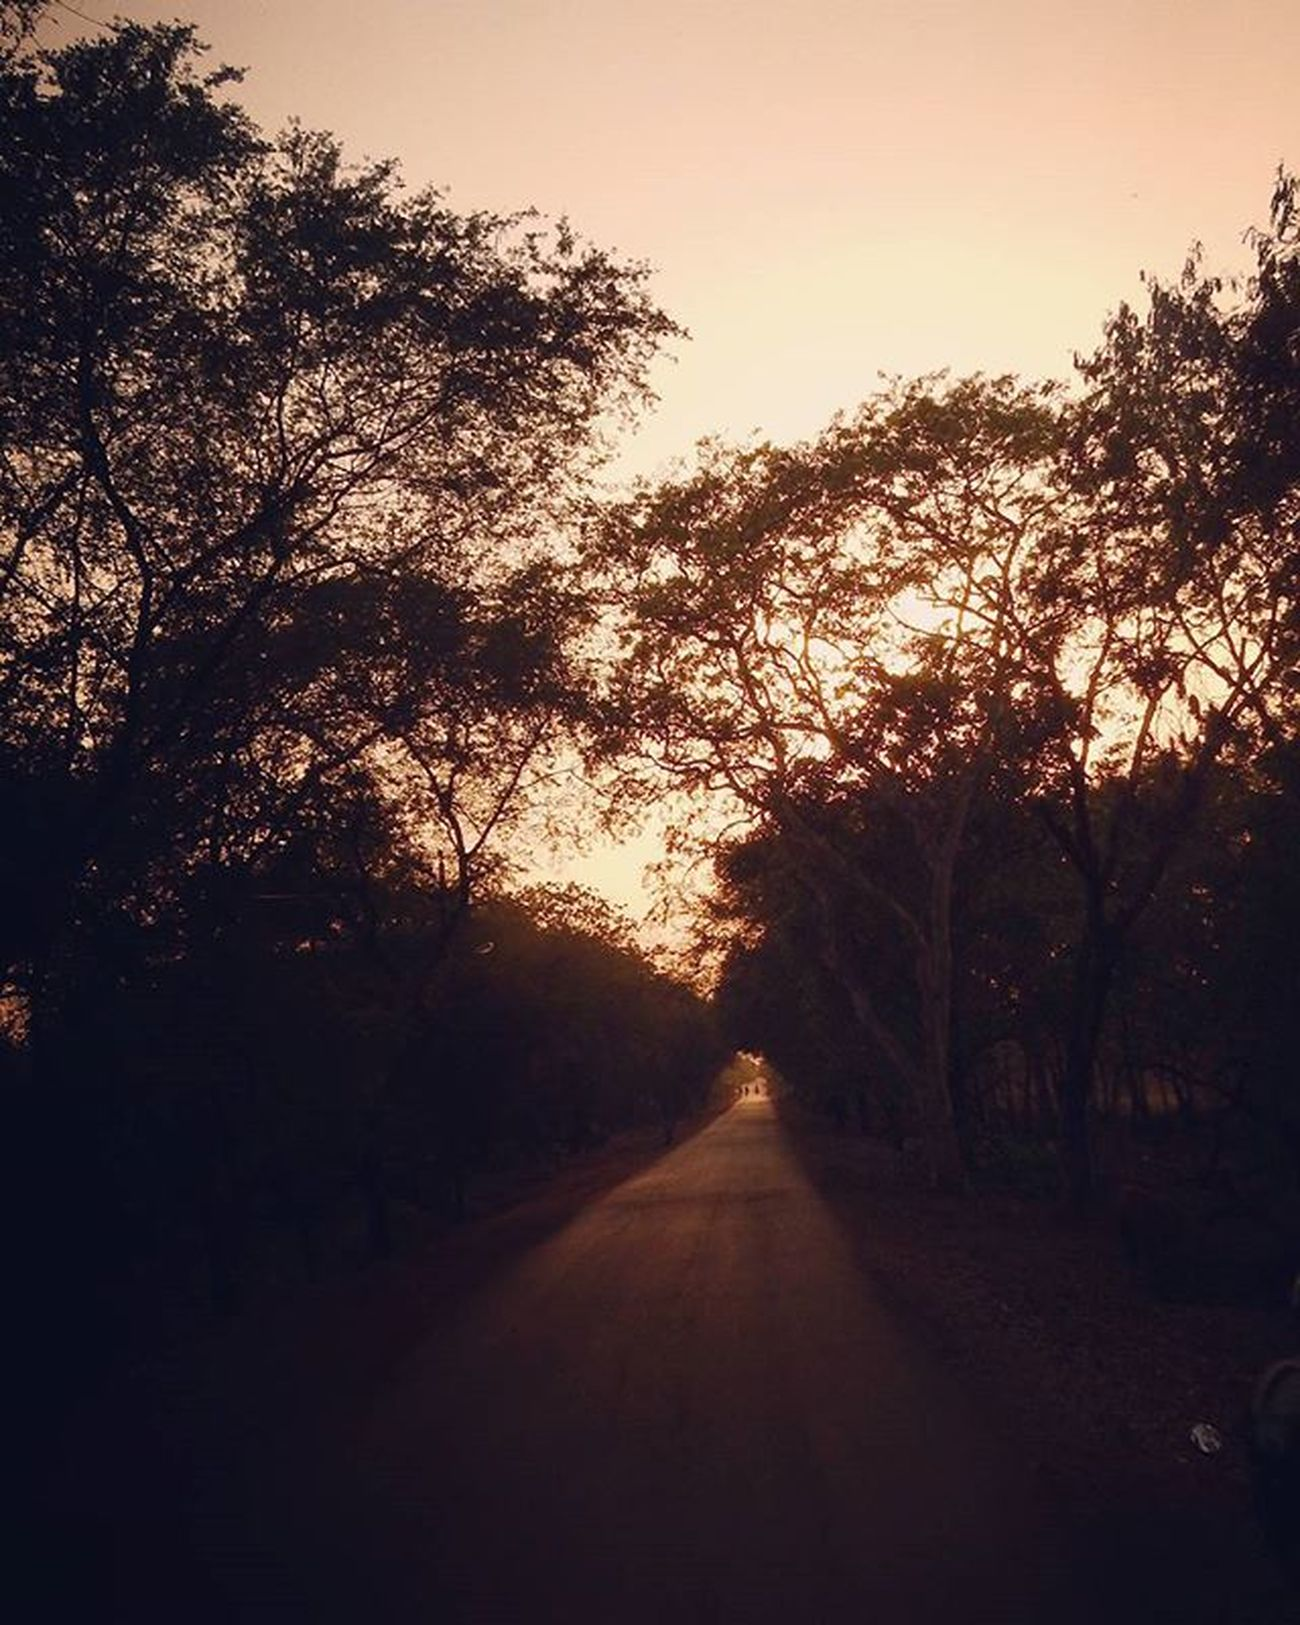 The Lost Way of Life! 💓 Nofilter EditLESS Photographers Sunset Road Dark Nikon_photographs Nikonphotography L820 Old_one Lovin_it Instadaily Photographyislife Nature_seekers Photographybros ✌